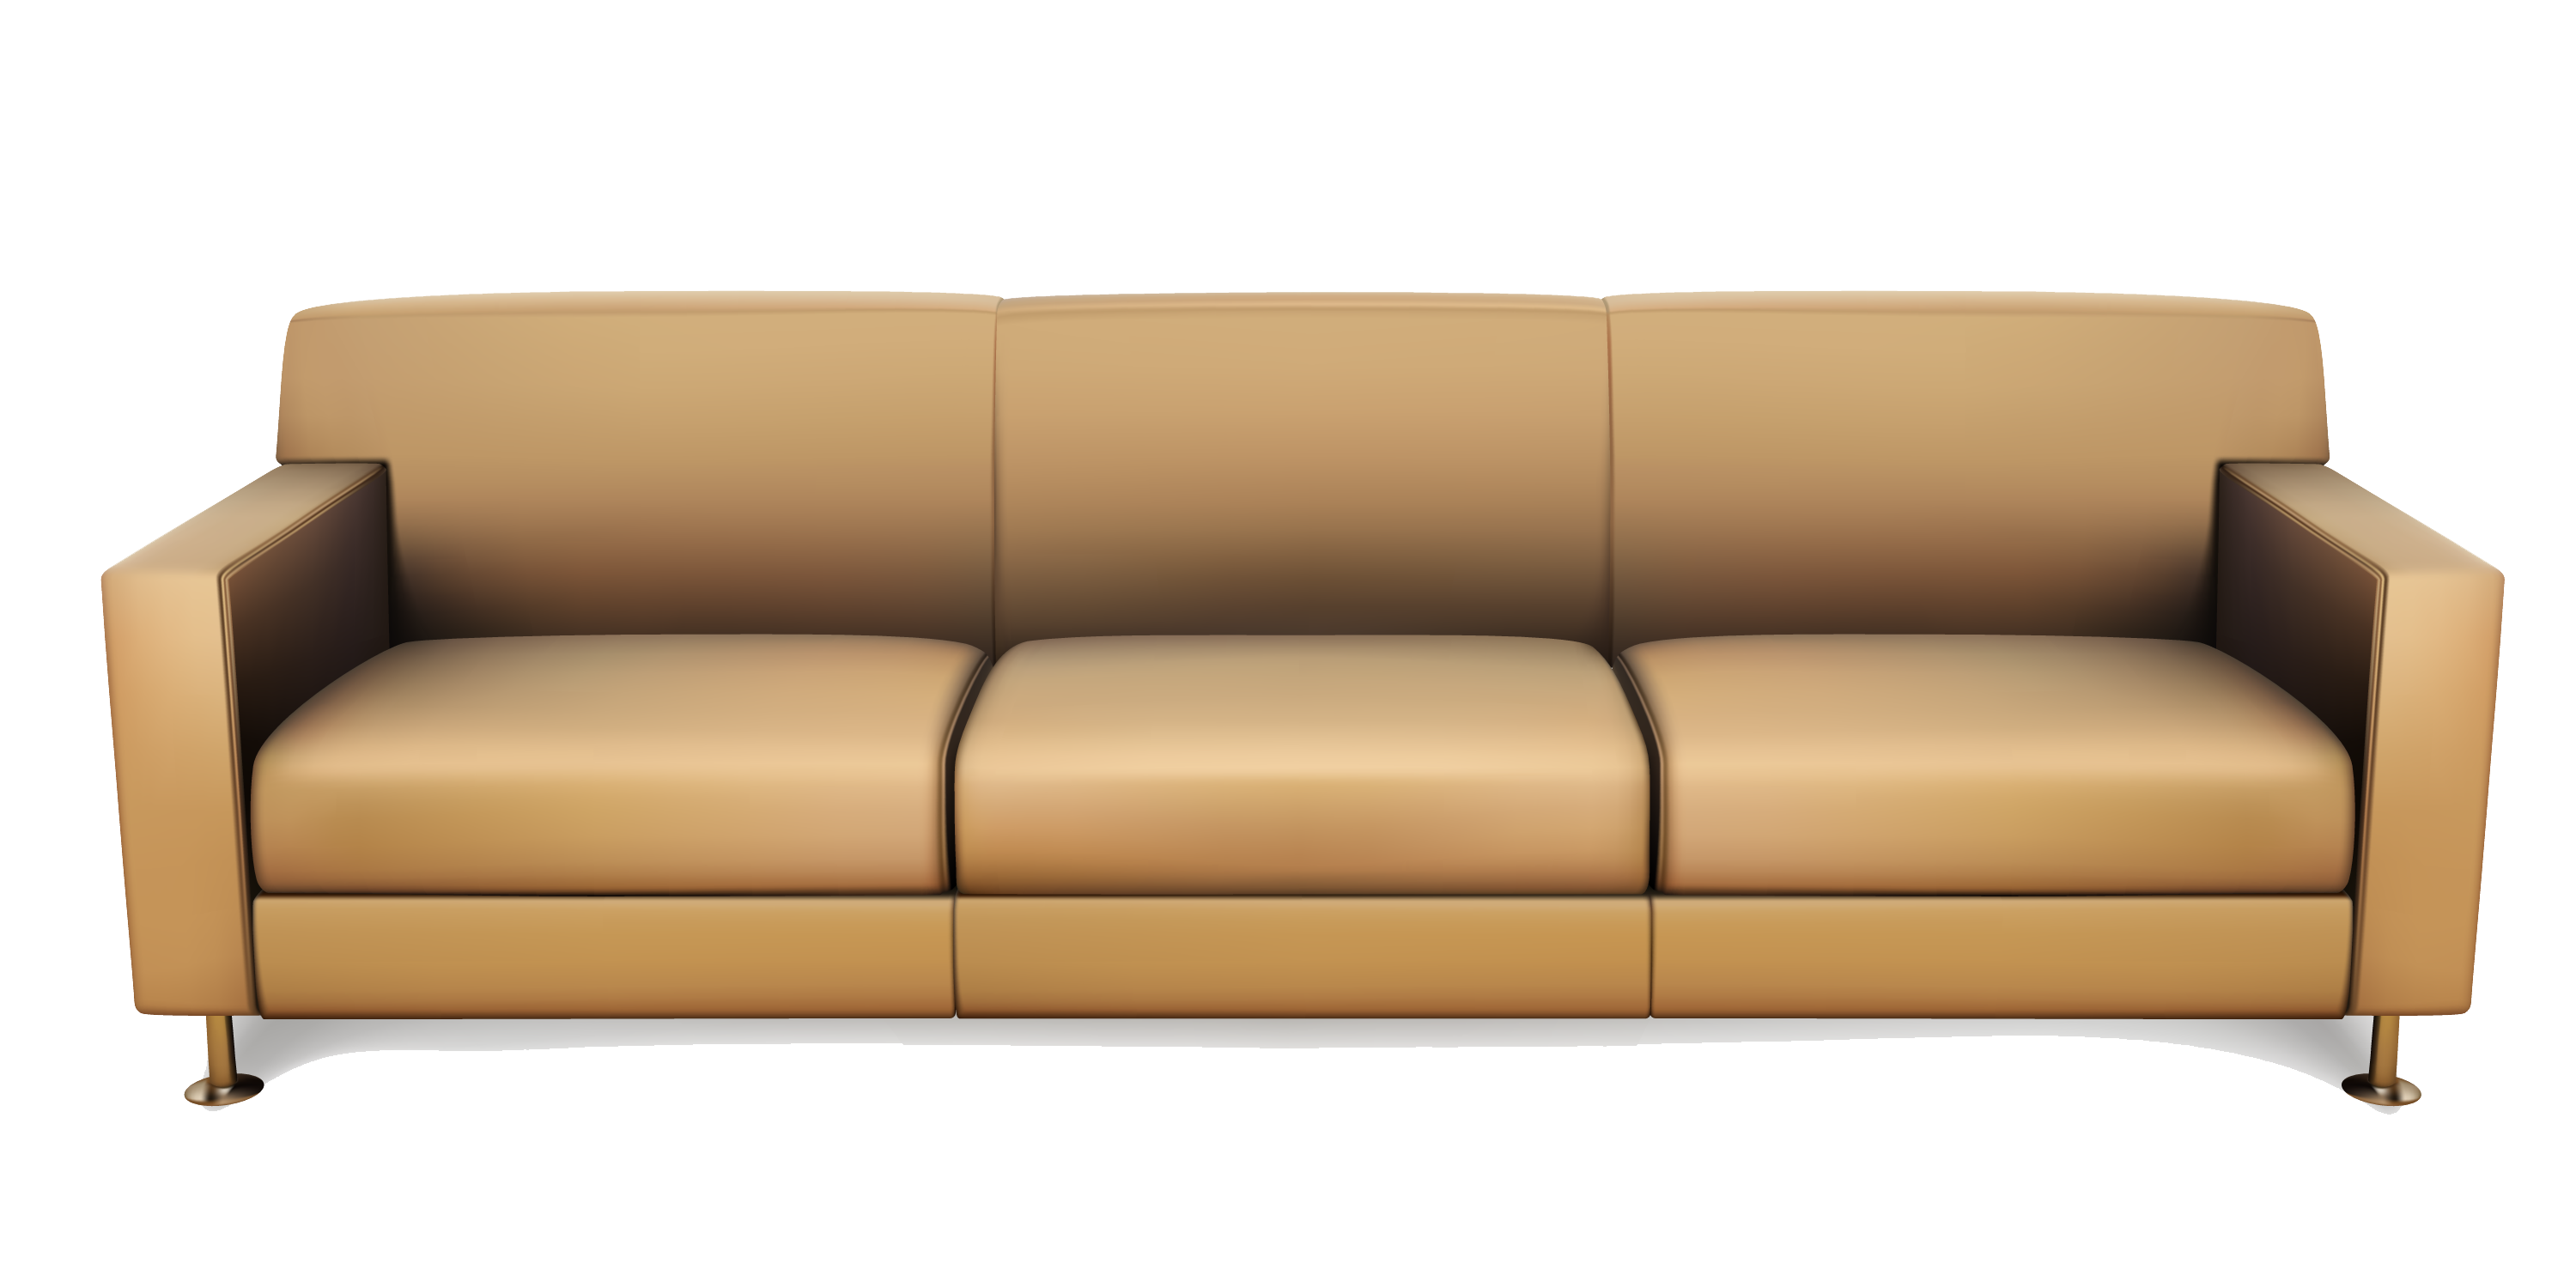 3000x1500 19 Sofa Vector Brown Leather Huge Freebie! Download For Powerpoint